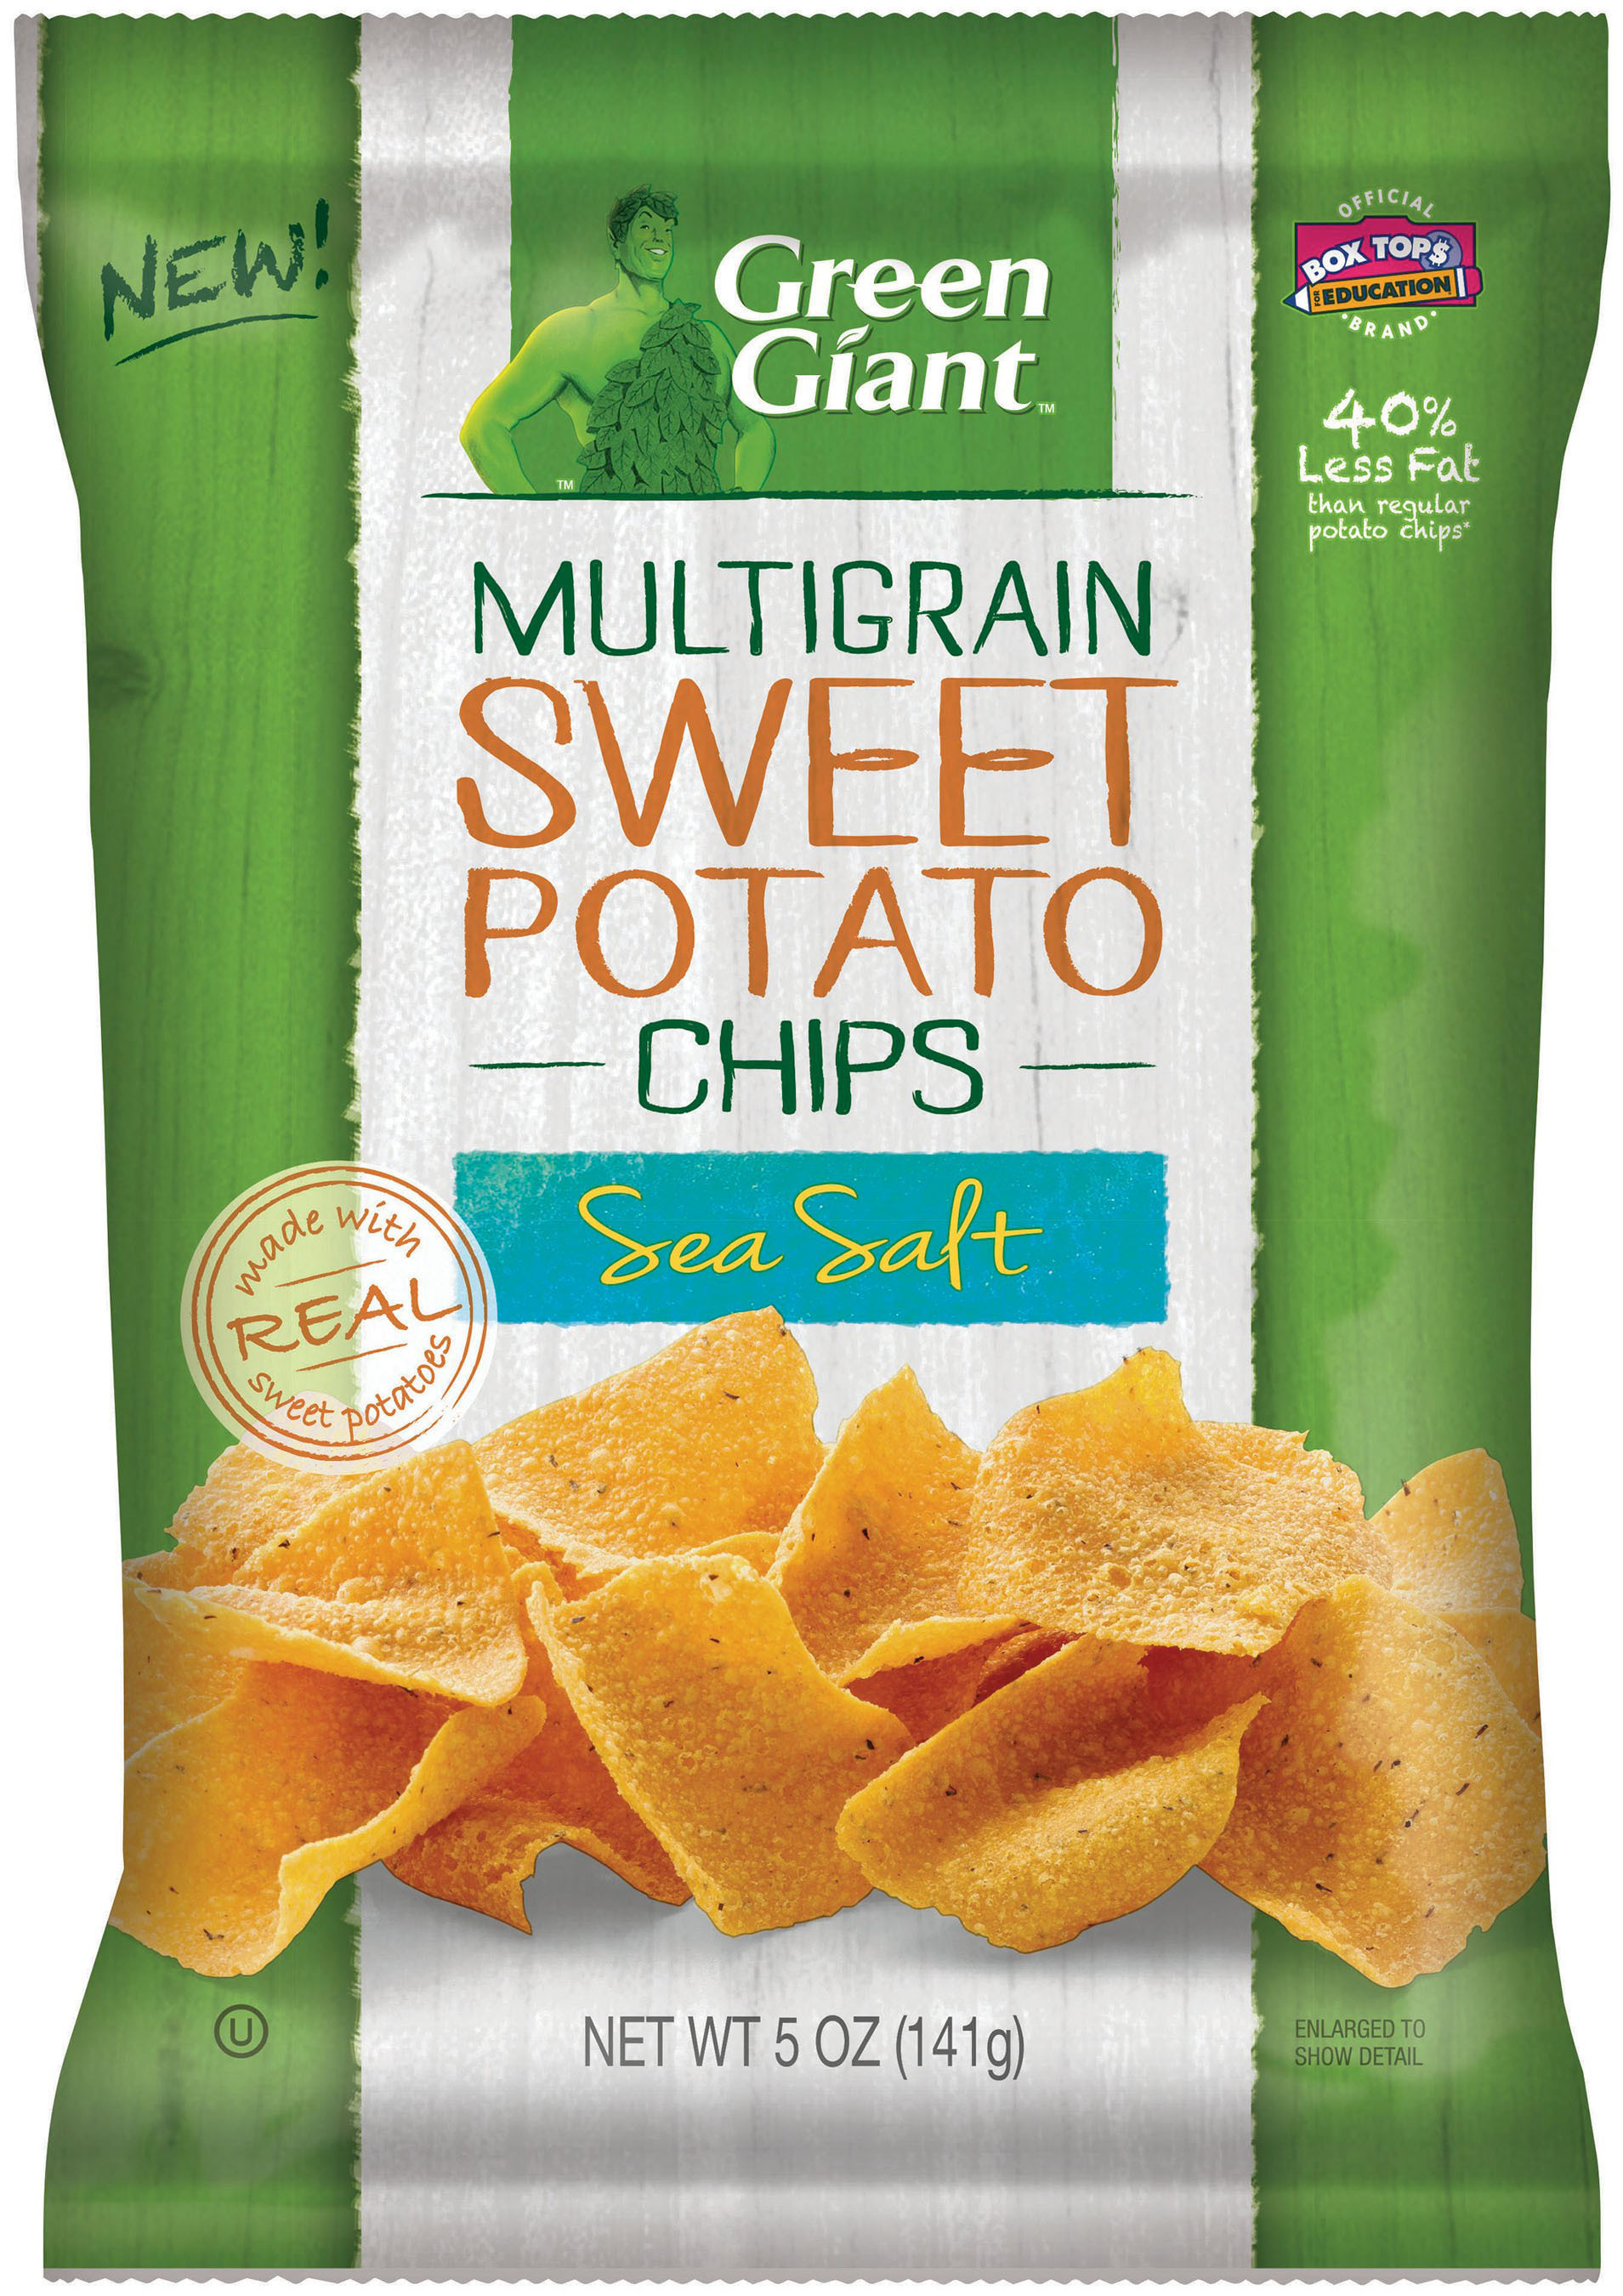 Green Giant Multigrain Sweet Potato Chip - Sea Salt Flavor contains 40 percent less fat than regular potato chips*, is made with 14 grams of whole grain per serving, and real sweet potatoes. *Green Giant Multigrain Sweet Potato Chips (6g per 28g serving) have 40 percent less fat than regular potato chips (10g per 28g serving).   (PRNewsFoto/General Mills)